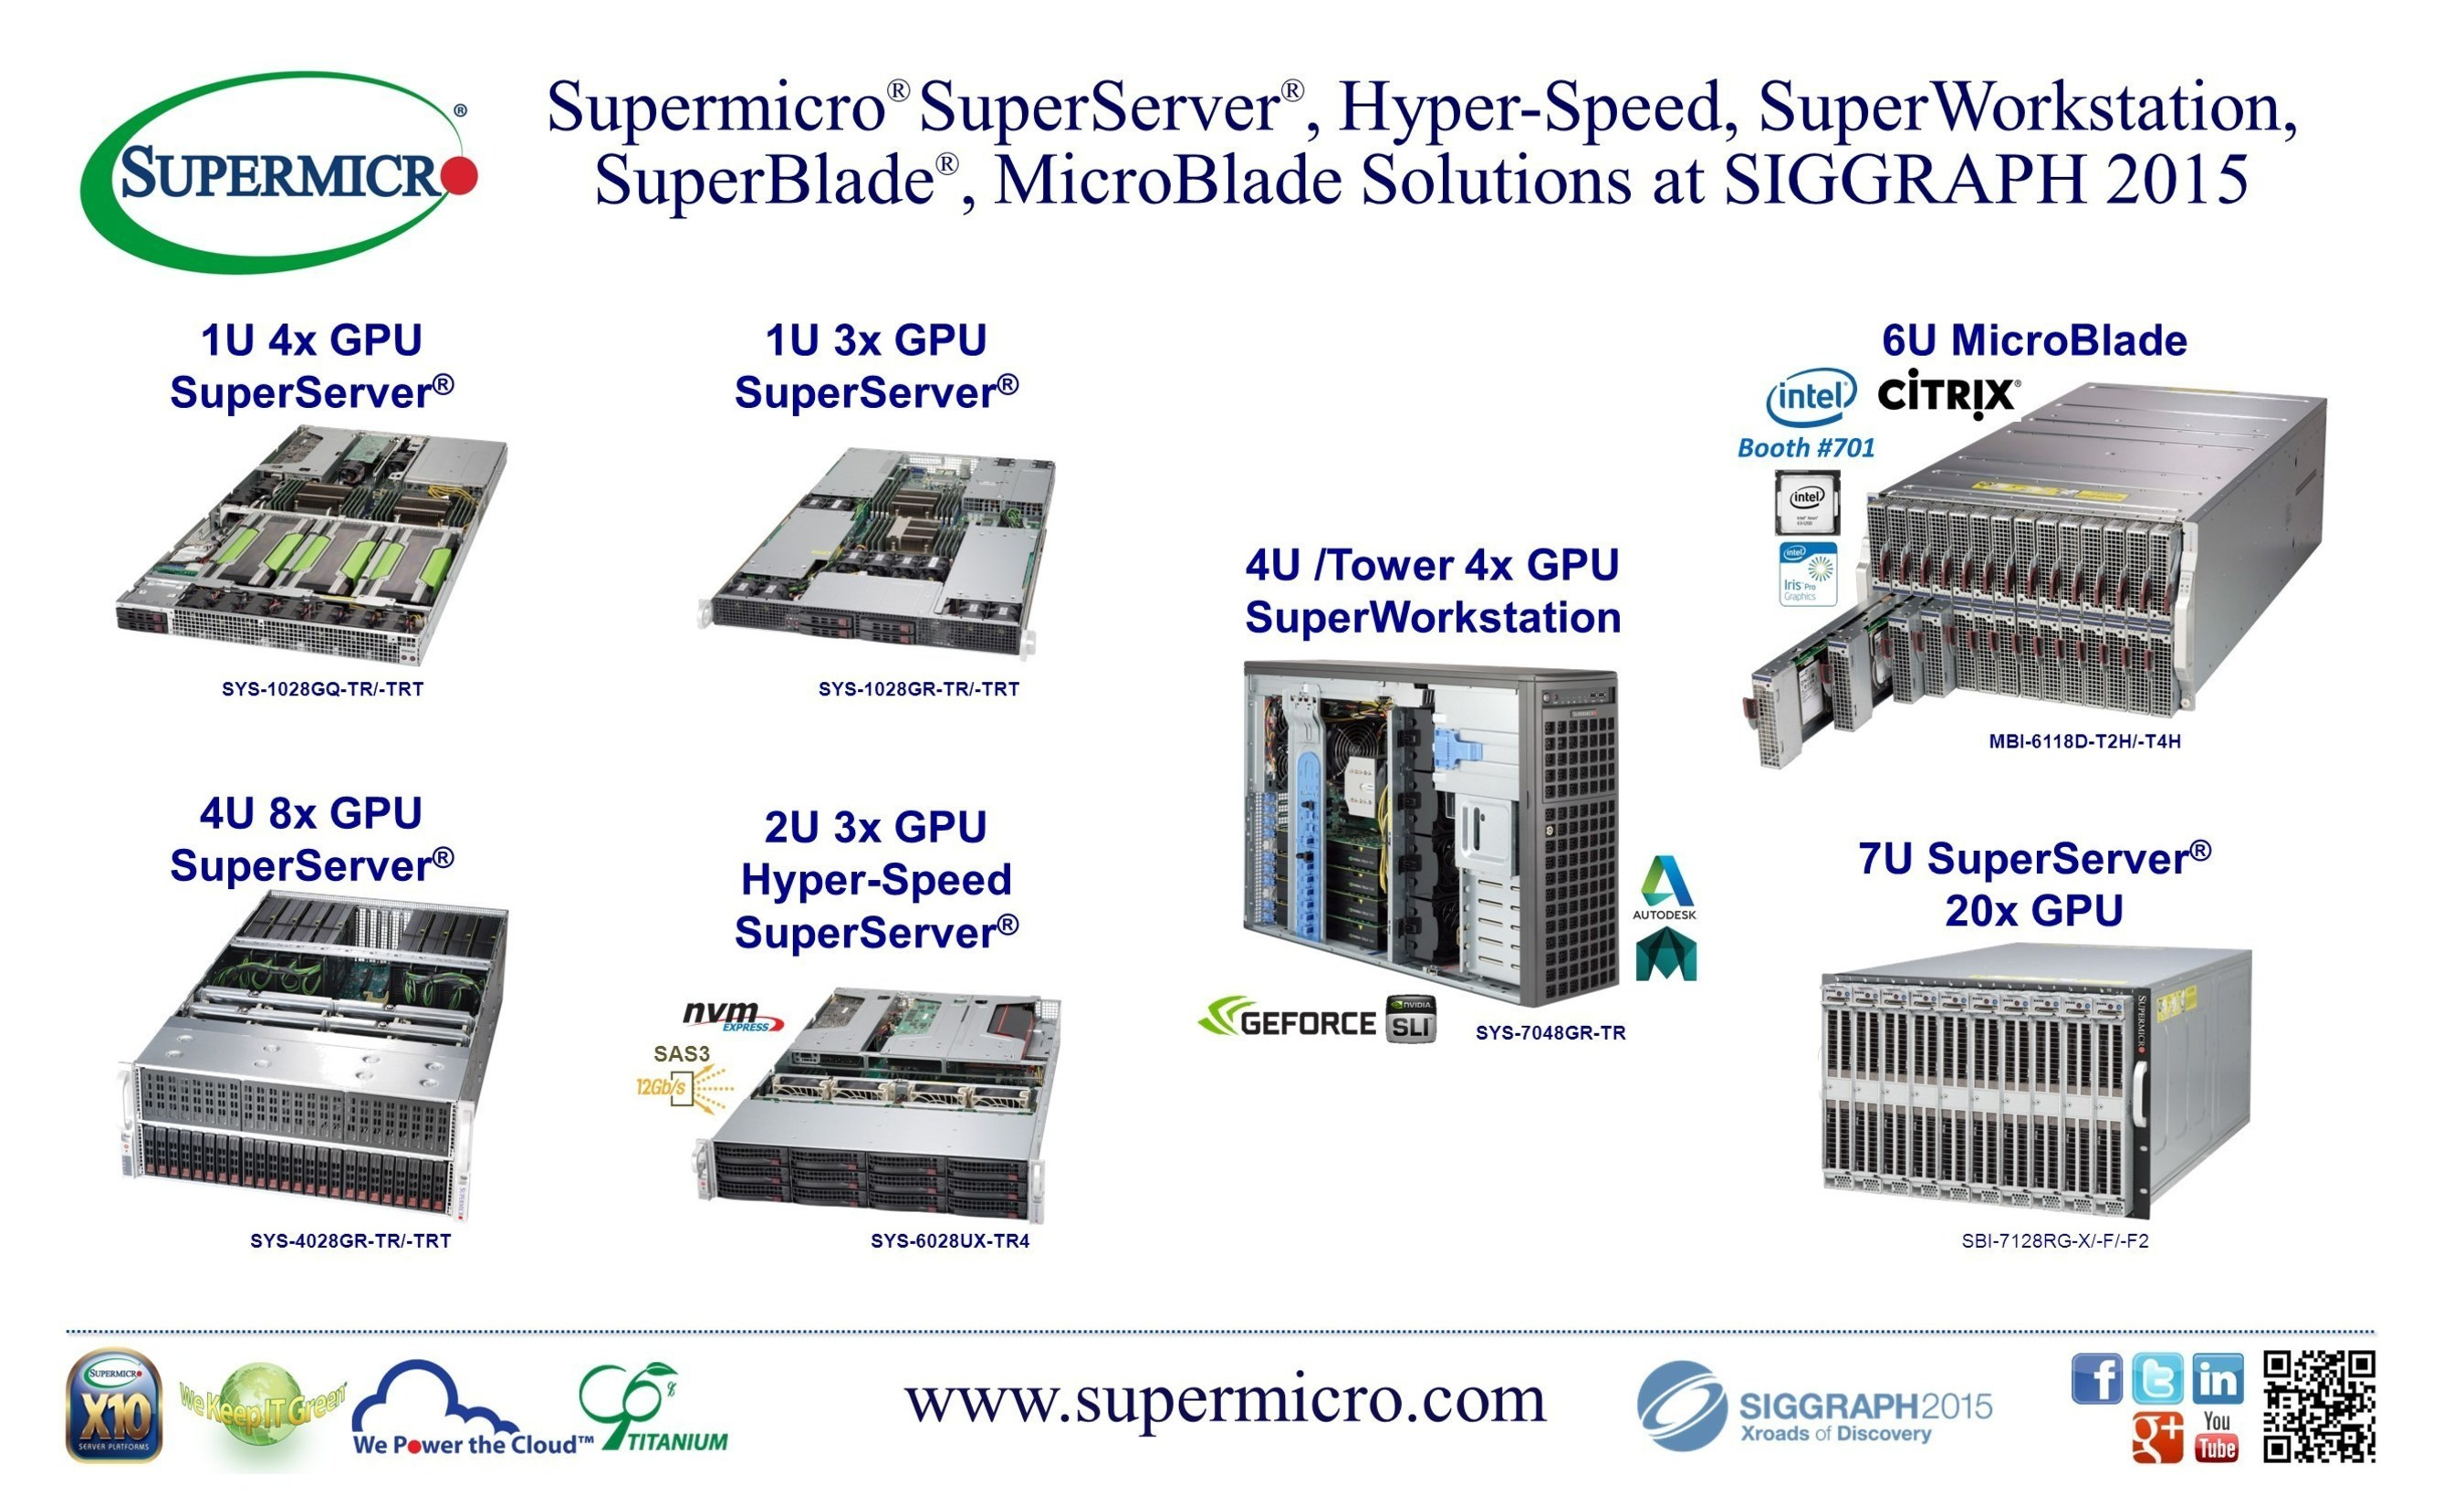 Supermicro' Showcases 1U 4x GPU SuperServer' and 3U/6U MicroBlade for 3D Graphics, Video, and Visualization Applications at SIGGRAPH 2015